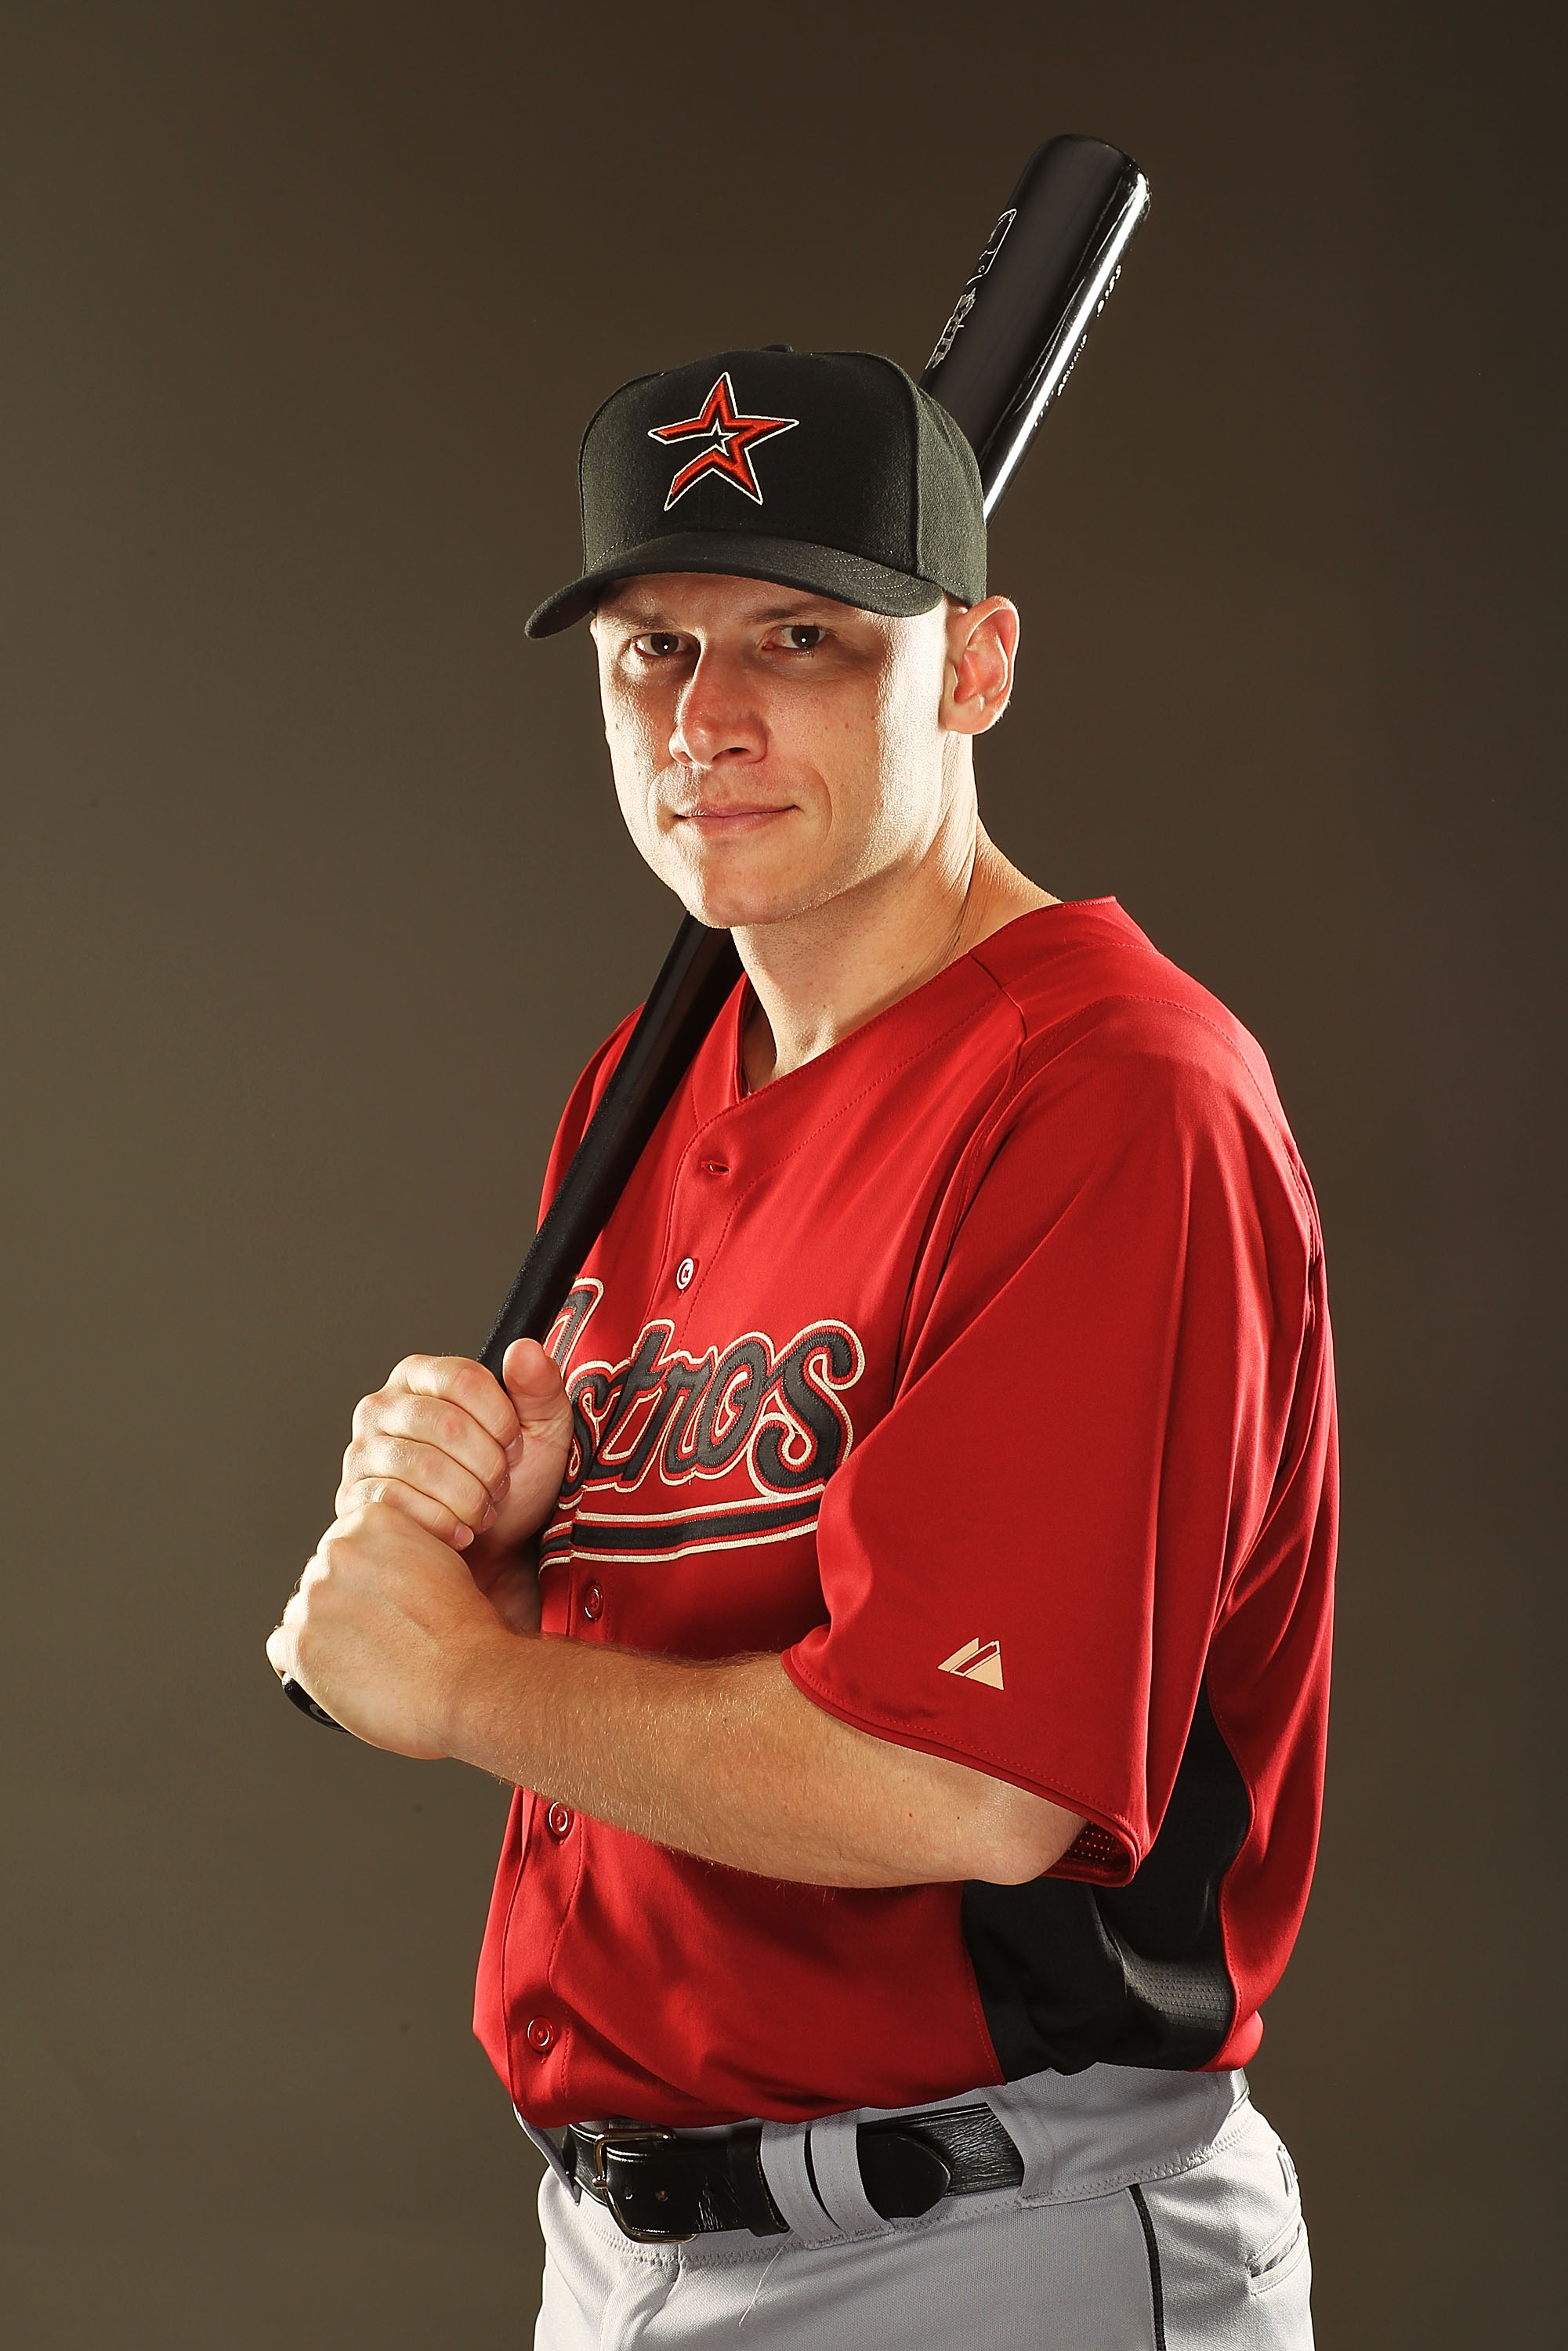 KISSIMMEE, FL - FEBRUARY 24:  Clint Barmes #14 of the Houston Astros poses for a portrait during Spring Training photo Day at Osceola County Stadium  on February 24, 2011 in Kissimmee, Florida.  (Photo by Al Bello/Getty Images)